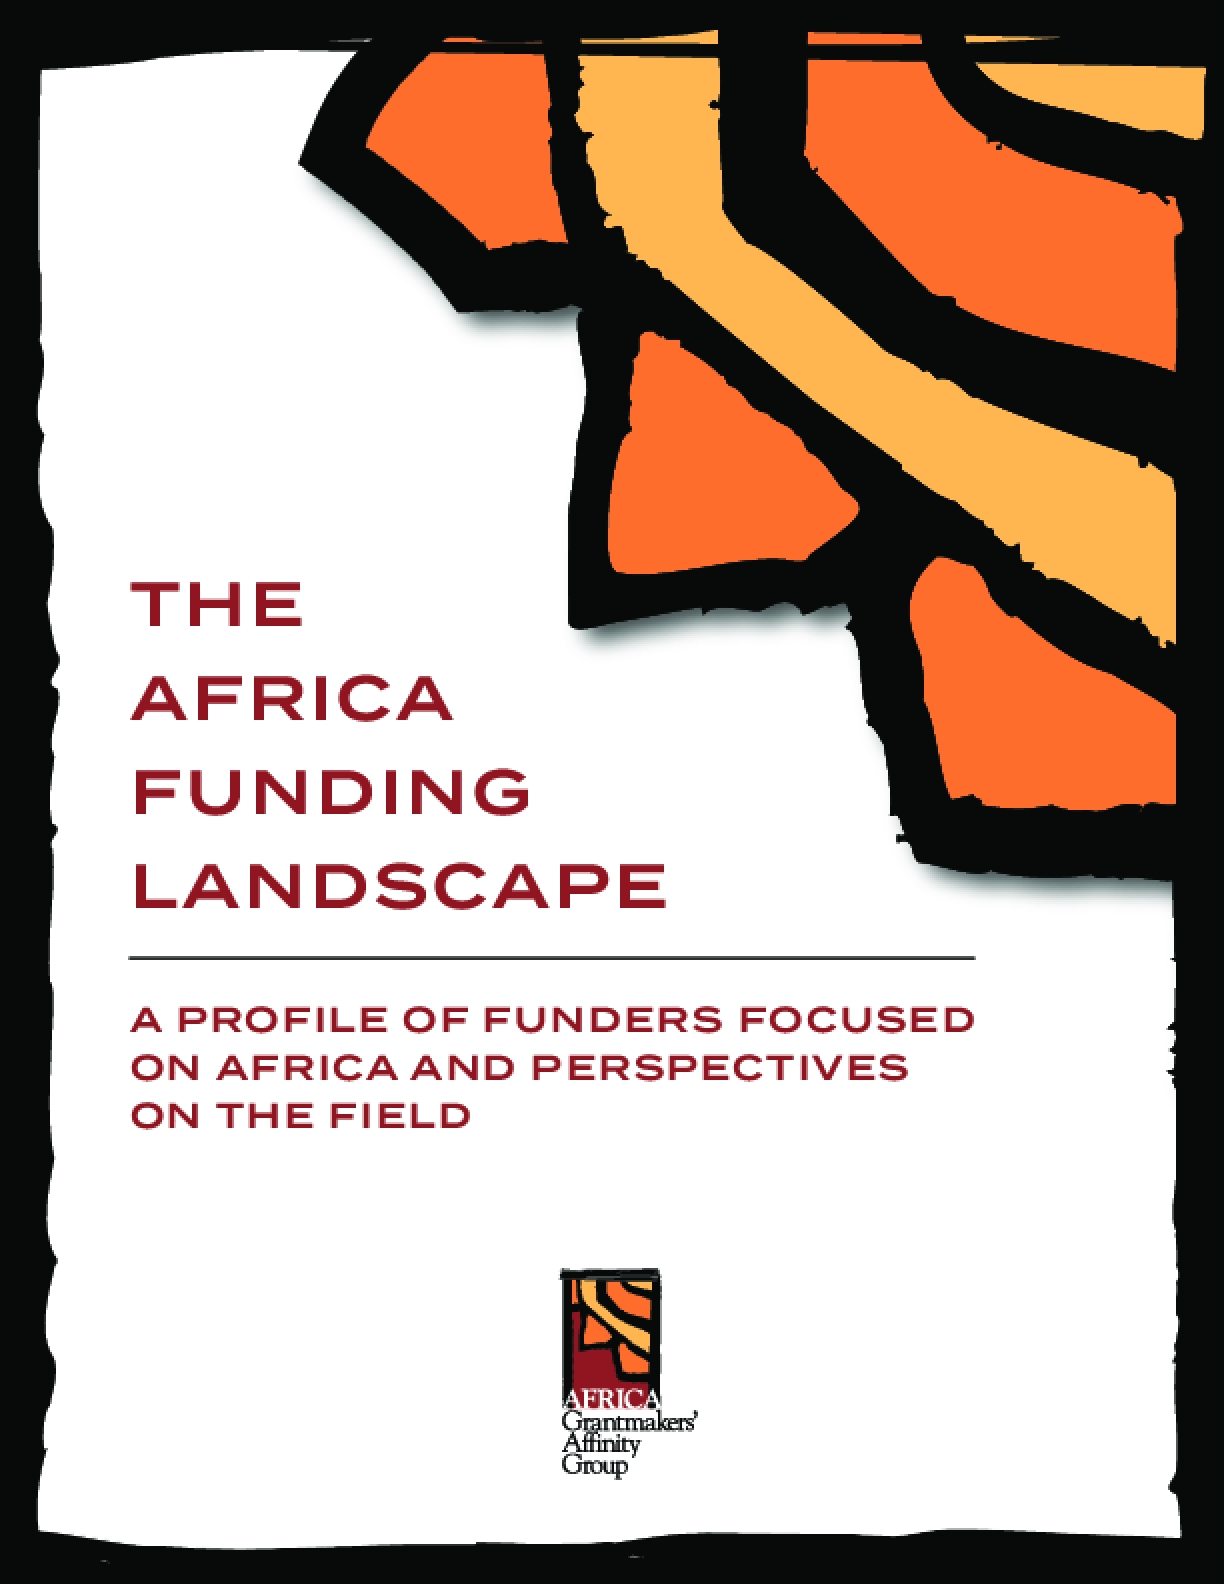 The Africa Funding Landscape: A Profile of Funders Focused on Africa and Perspectives on the Field